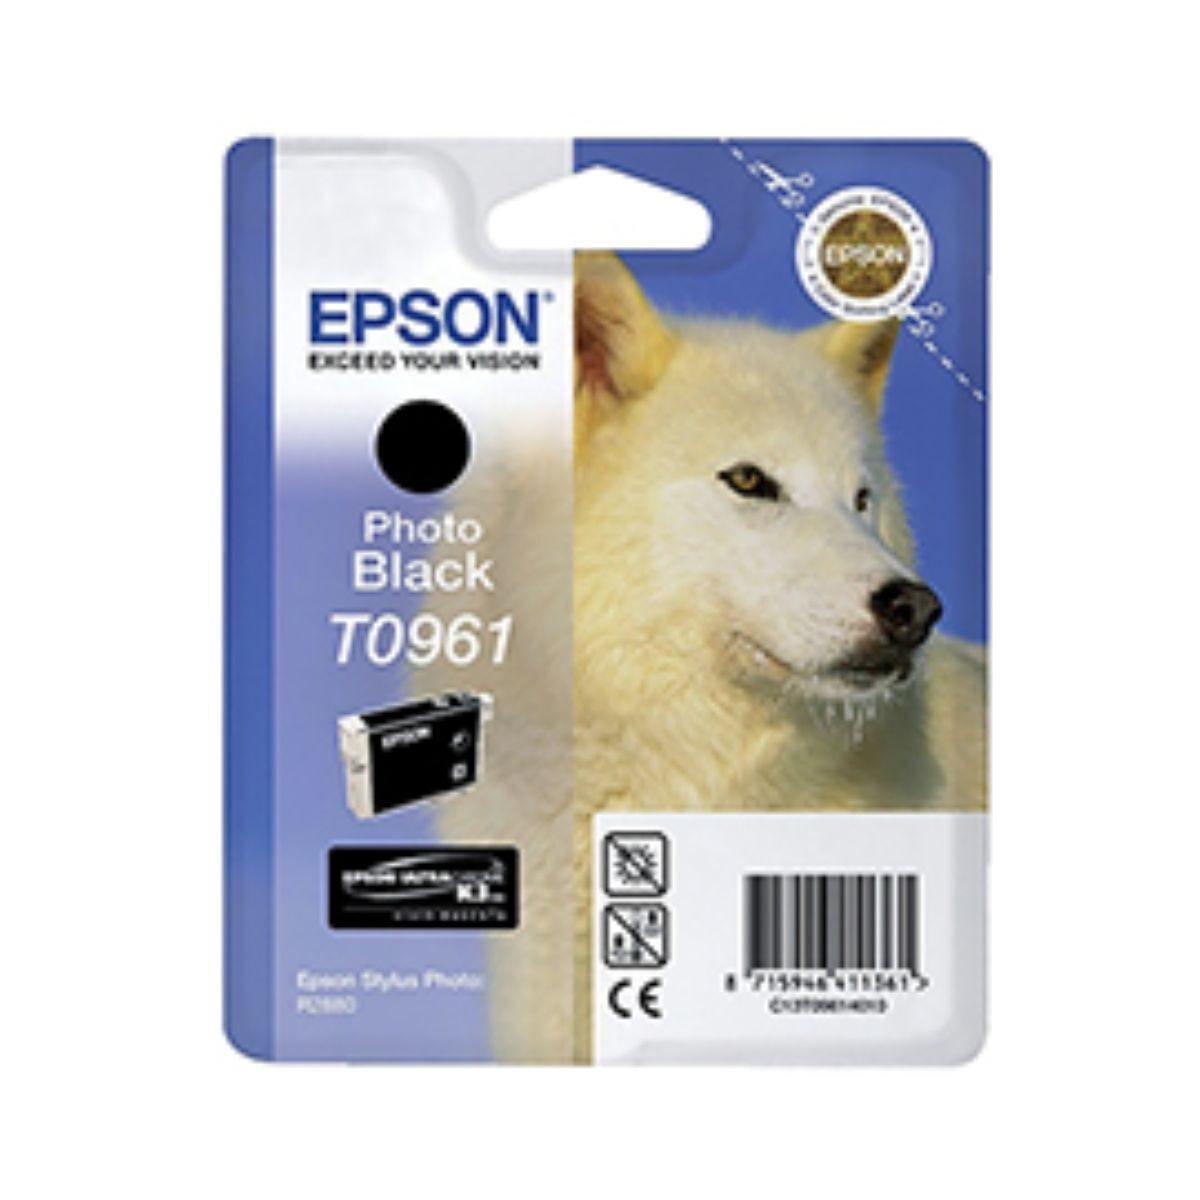 Epson T0961 Photo Ink Black